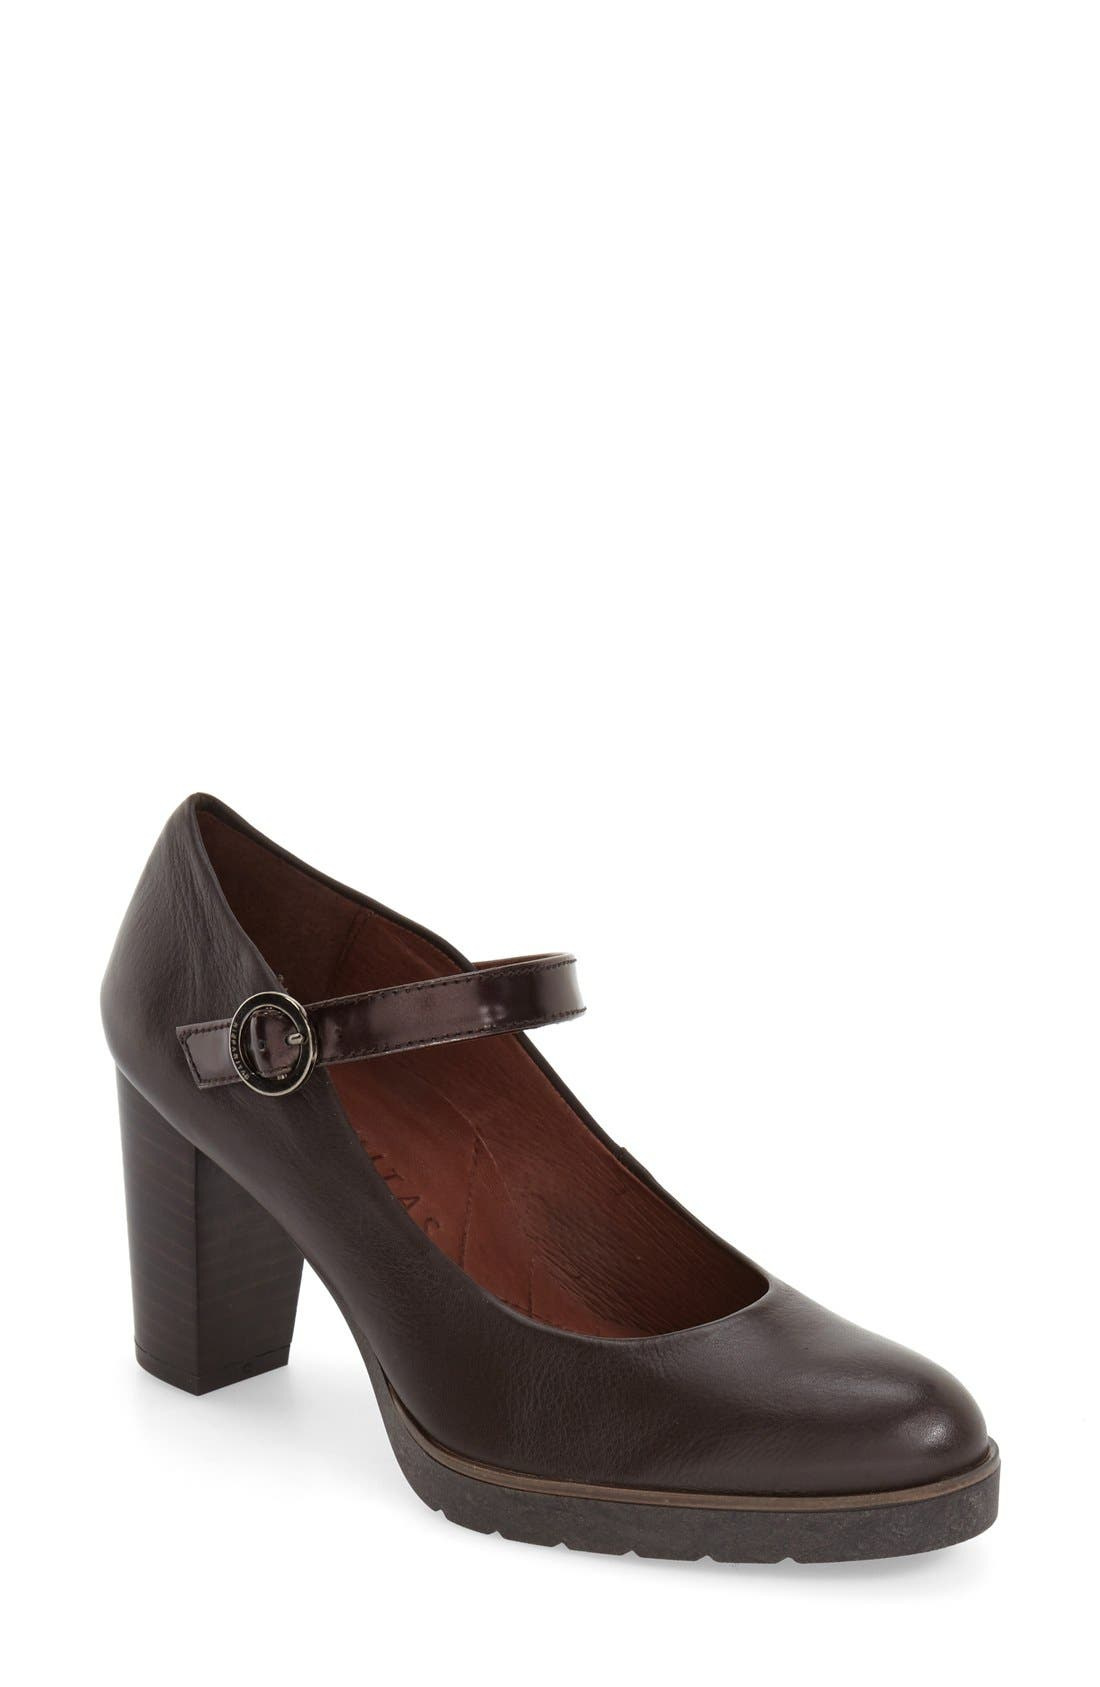 'Veda' Mary Jane Pump,                         Main,                         color, 200